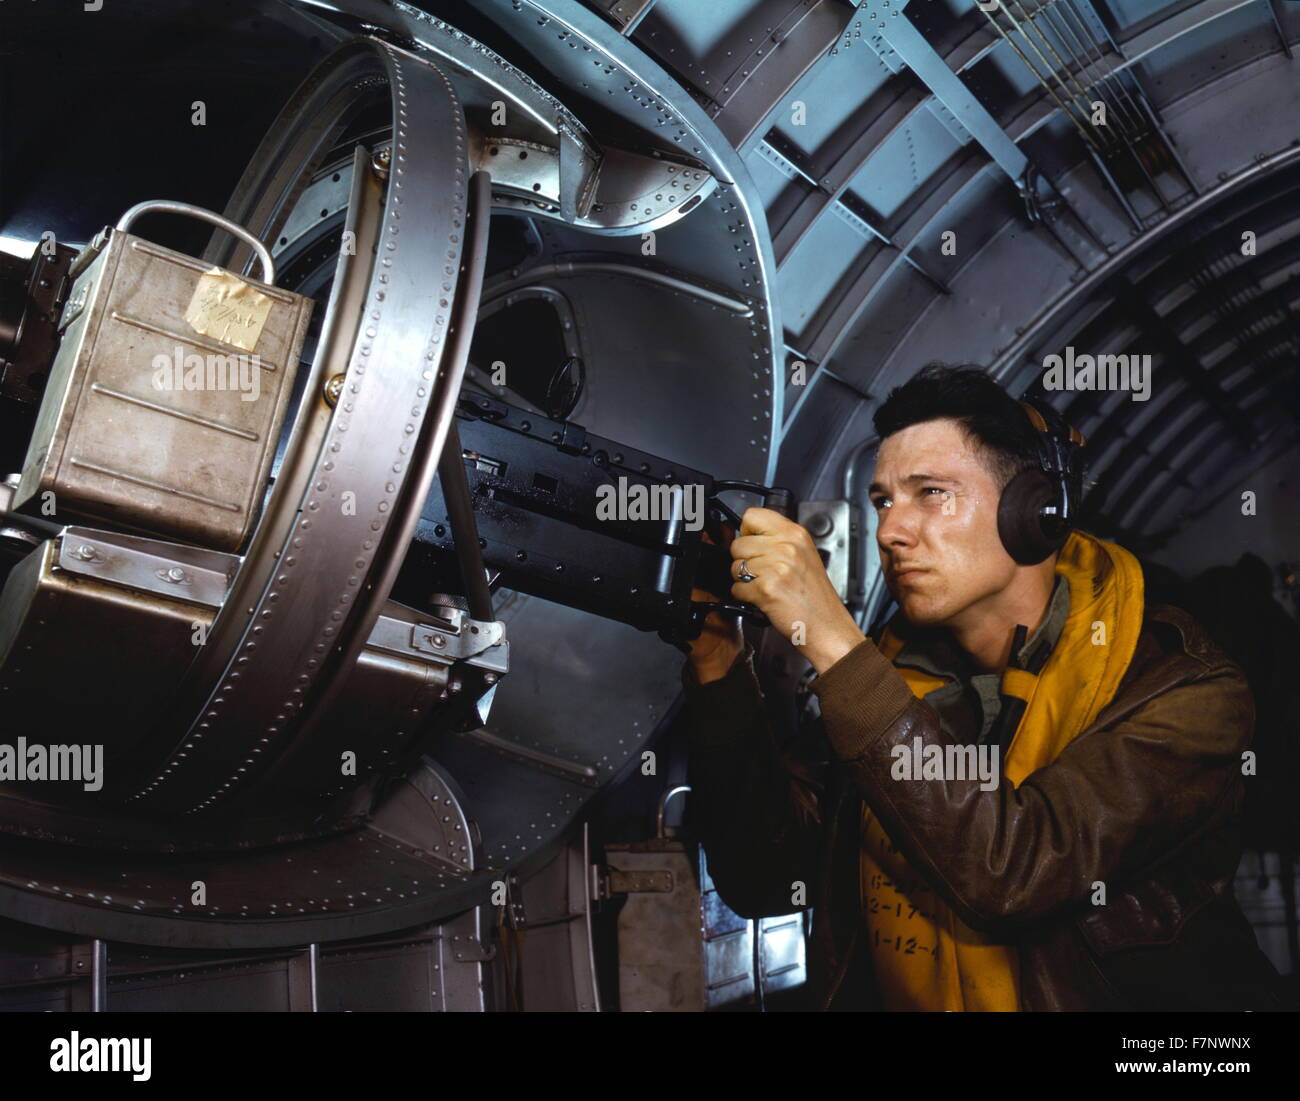 American airman using a a side machine gun of a B-17 Flying Fortress bomber, May 1942. World war two - Stock Image